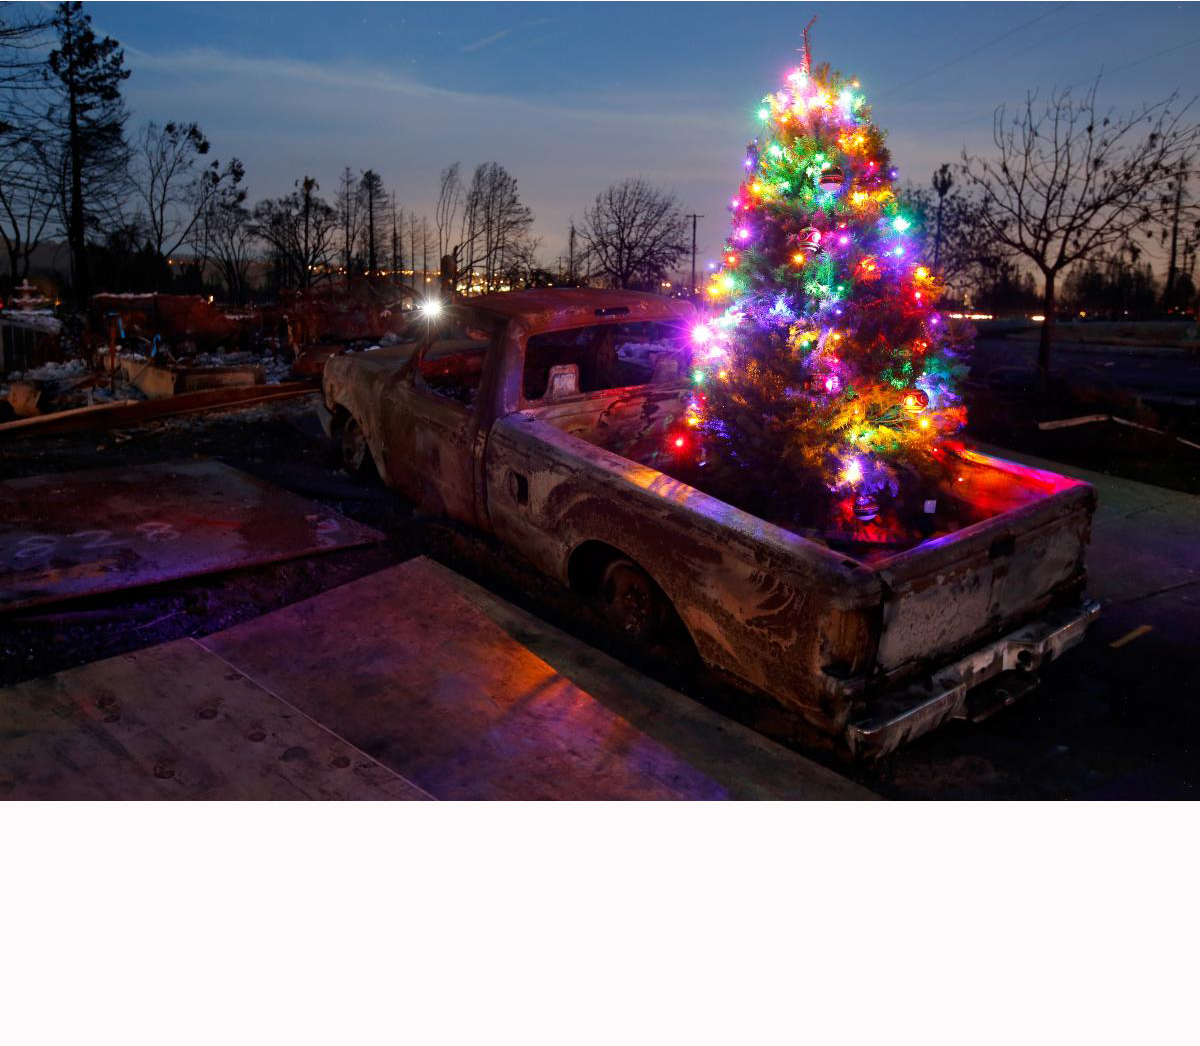 Picture of a lit Christmas tree in the back of a burned pickup truck.  Taken after the Tubbs  fire